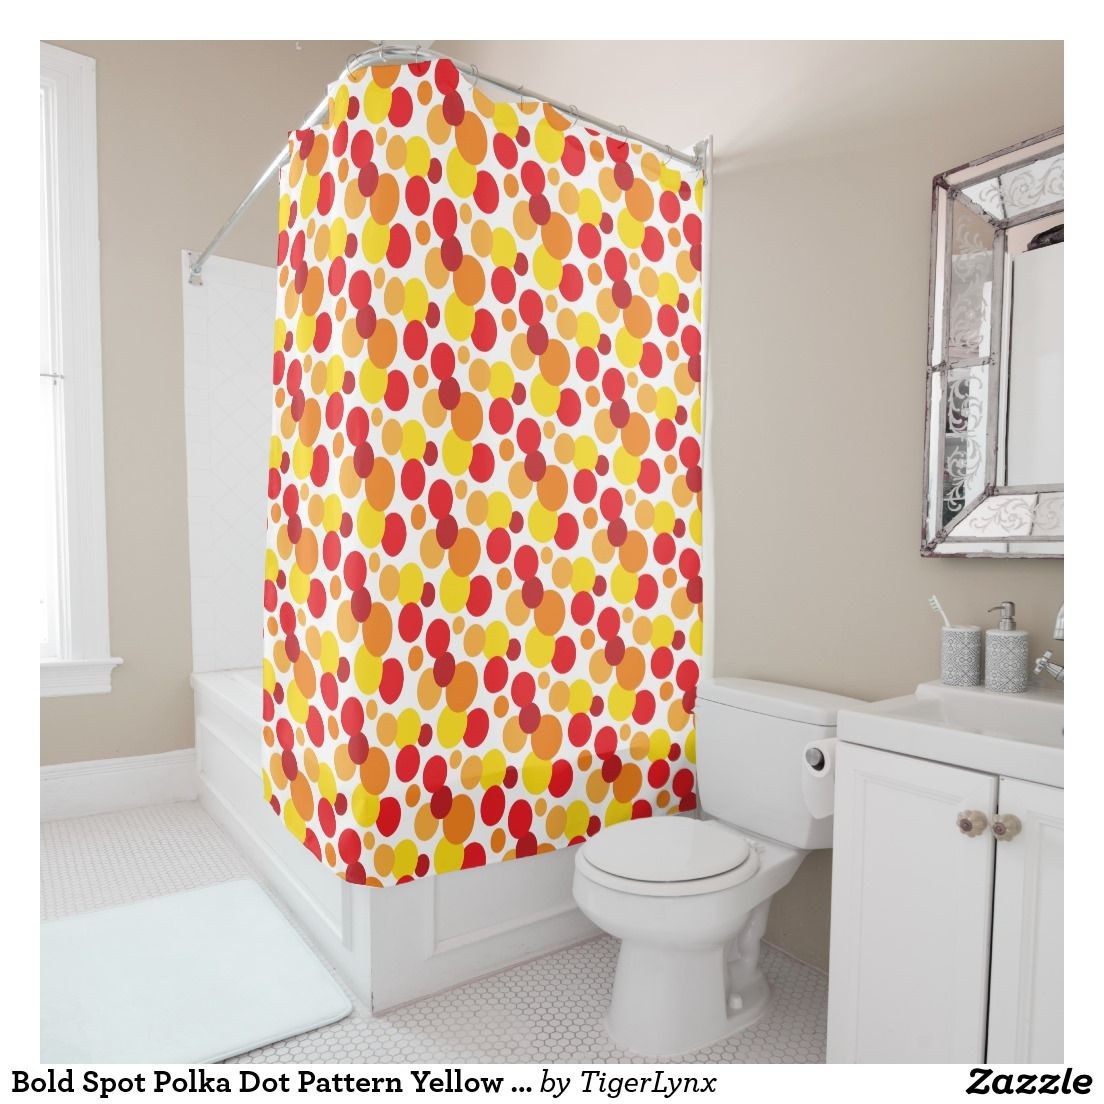 Bold Spot Polka Dot Pattern Yellow Orange Red Shower Curtain By Tigerlynx From Zazzle